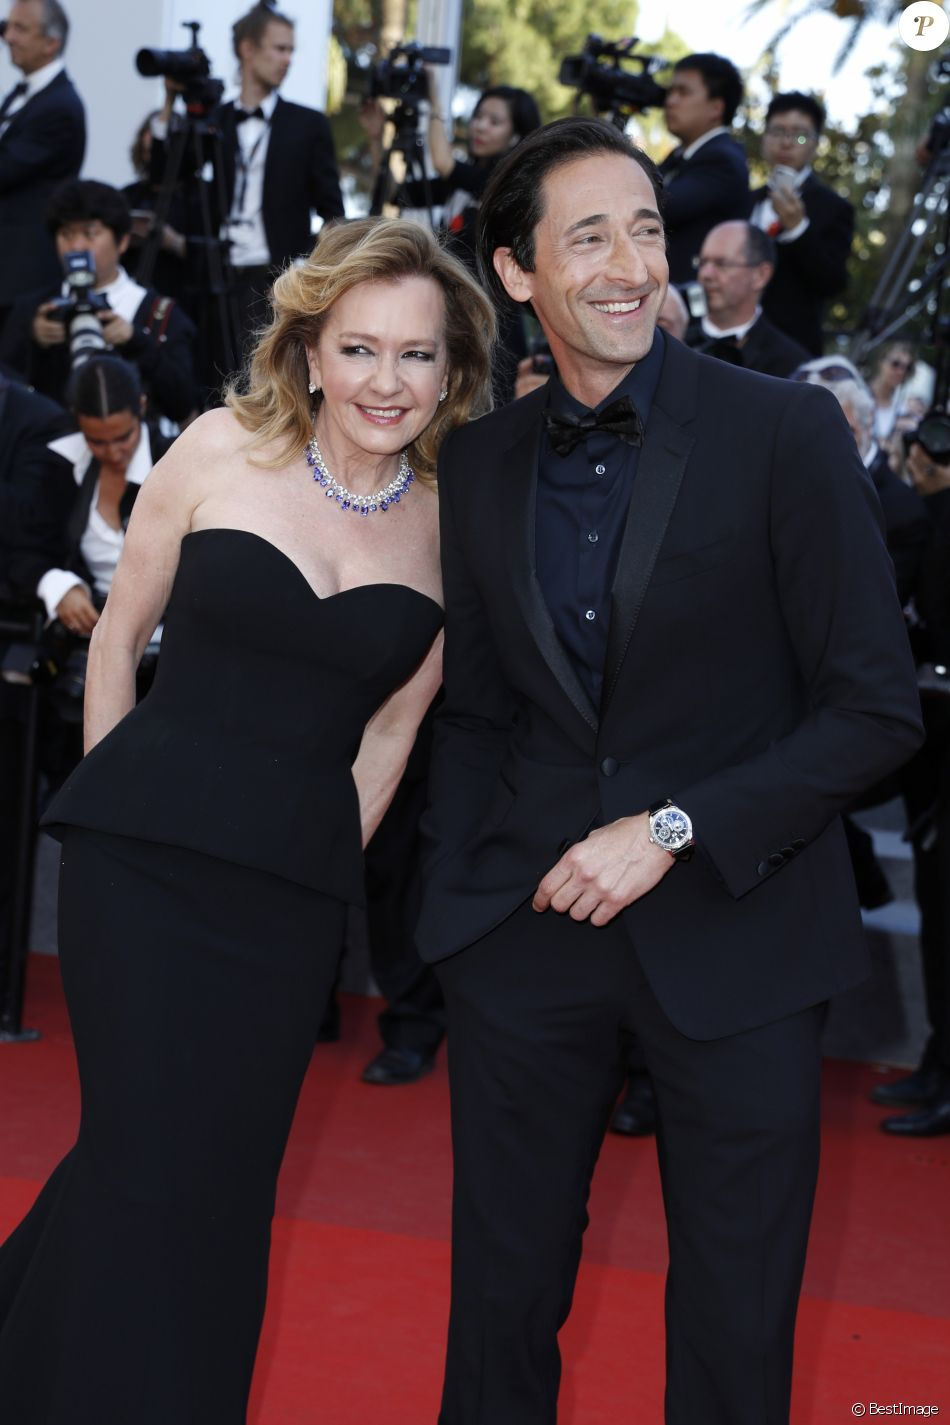 Cannes 2017 - Day 12 - Closing Ceremony - Chopard Co-President & Creative Director Caroline Scheufele and Adrien Brody